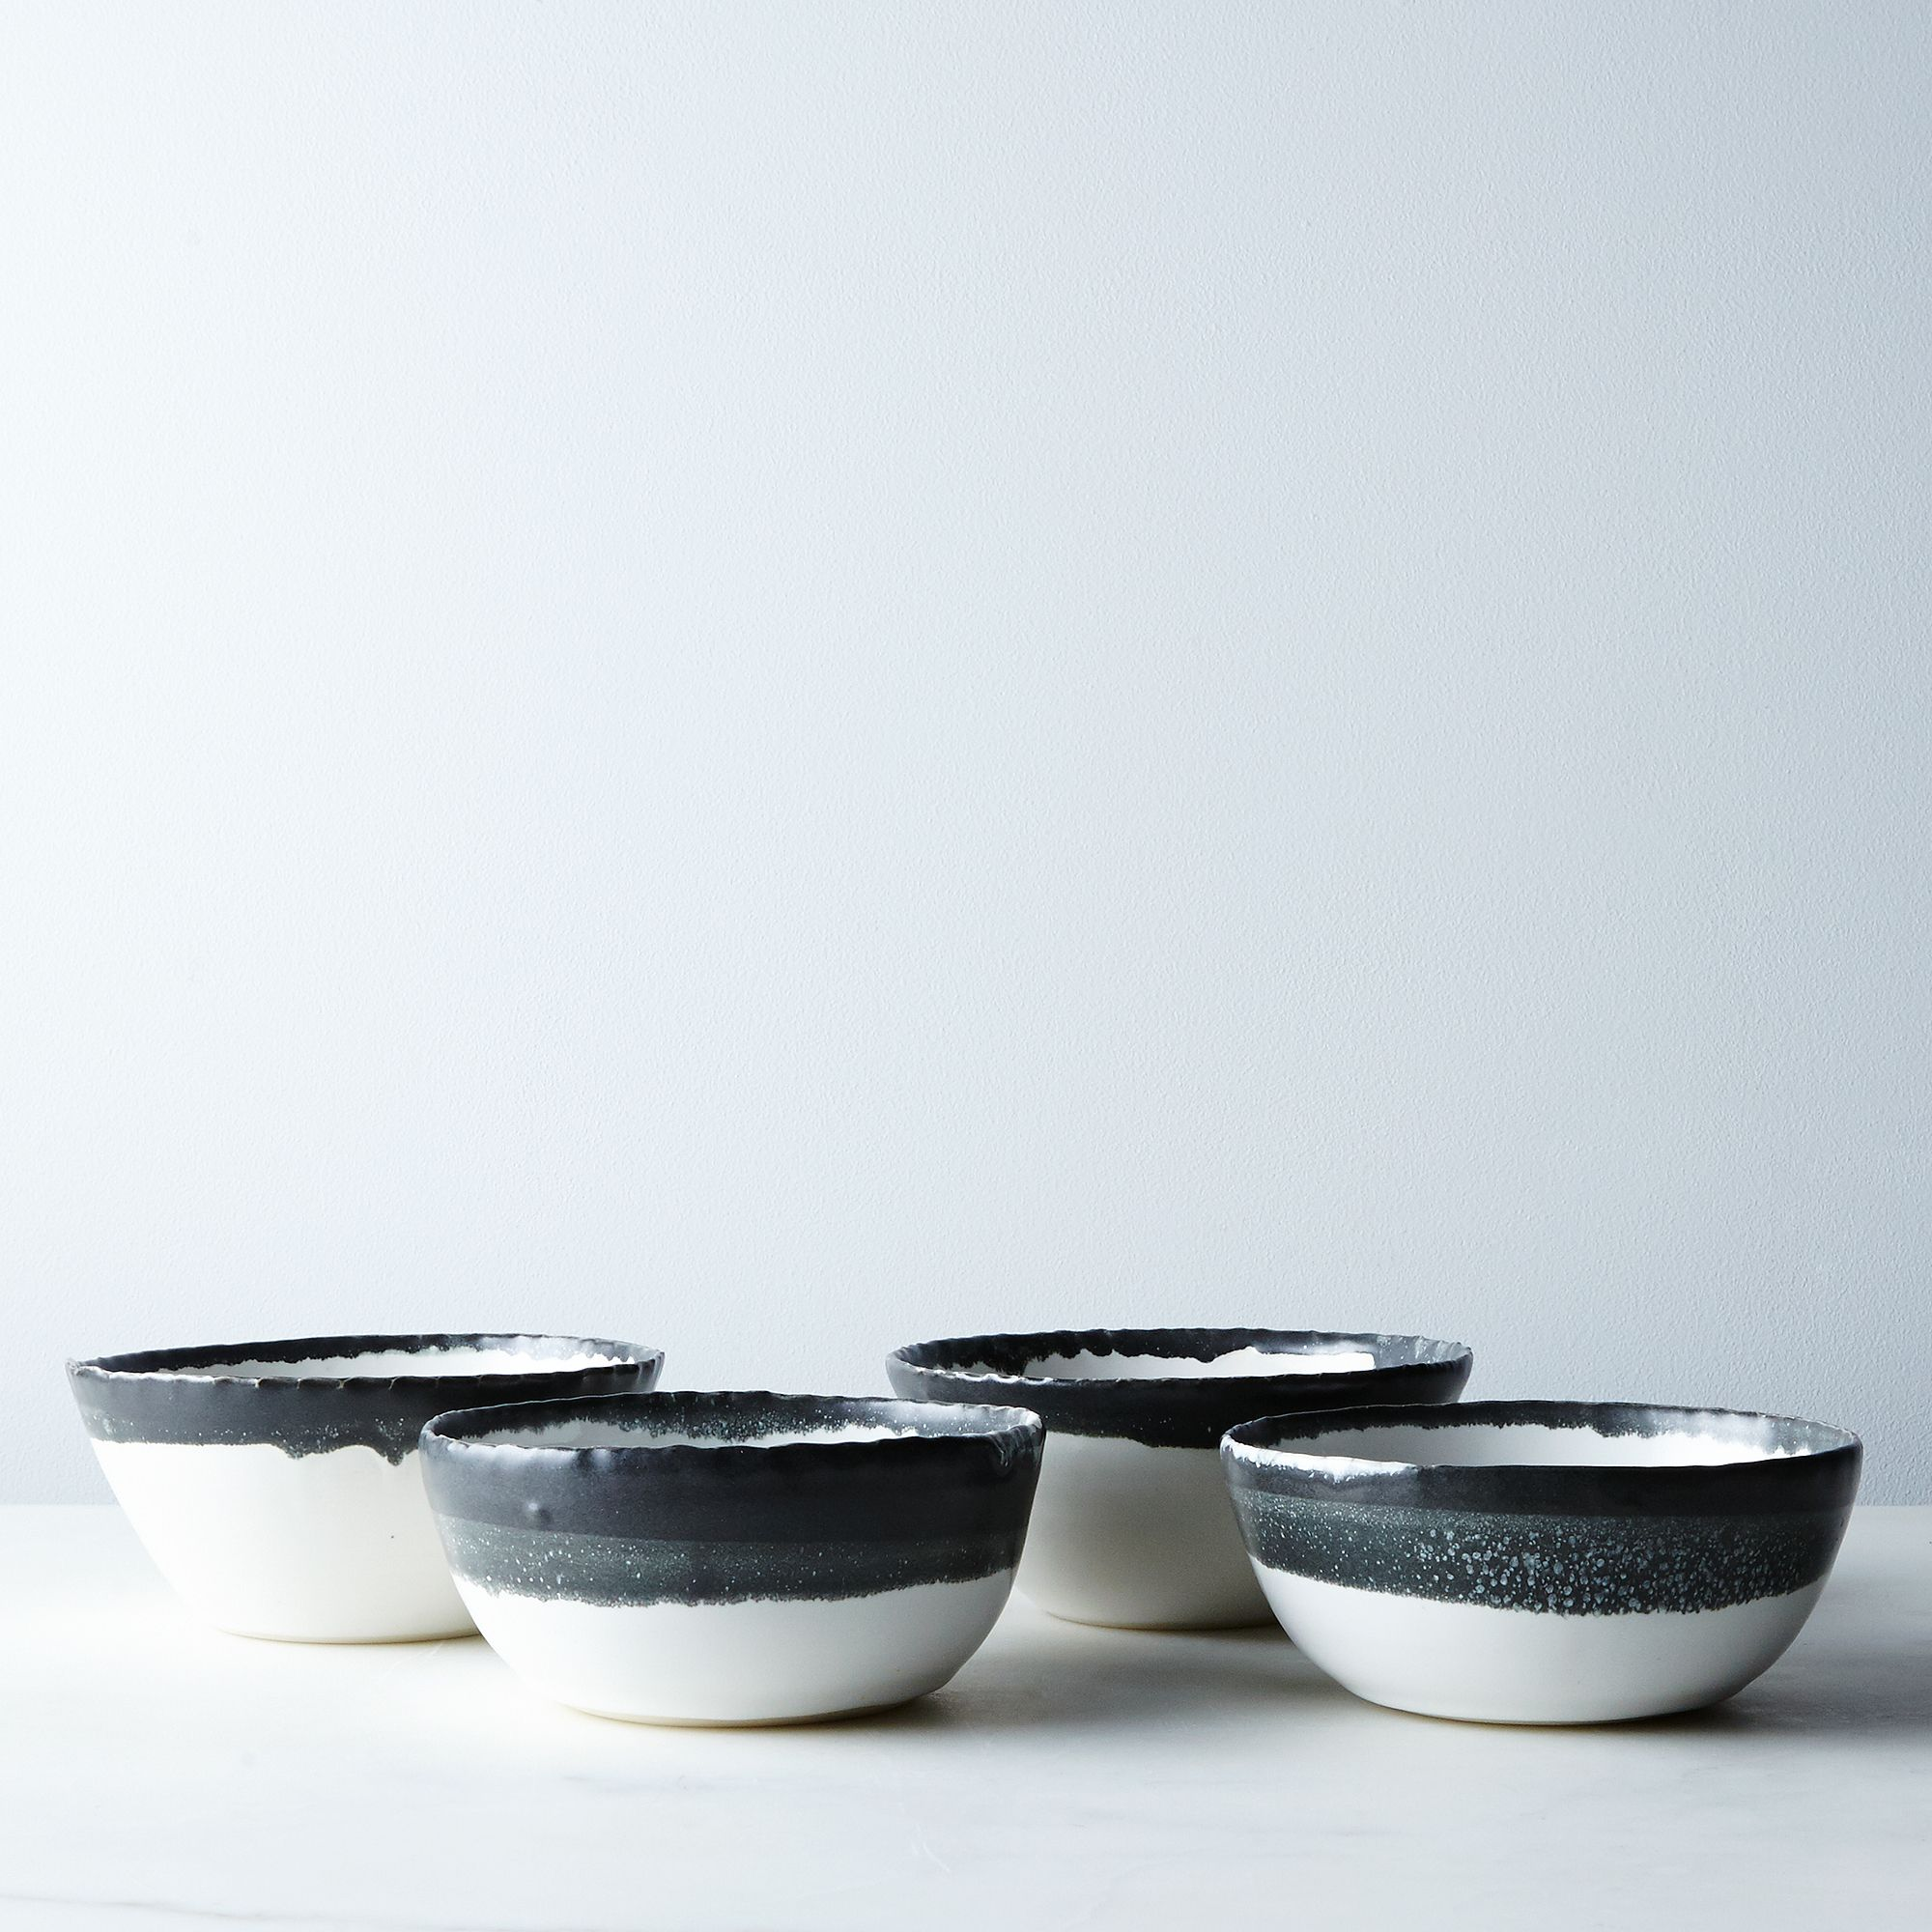 A513a9a4 a0f8 11e5 a190 0ef7535729df  2015 0613 fisheye brooklyn charcoal dipped ice cream bowls set of 4 silo rocky luten 013